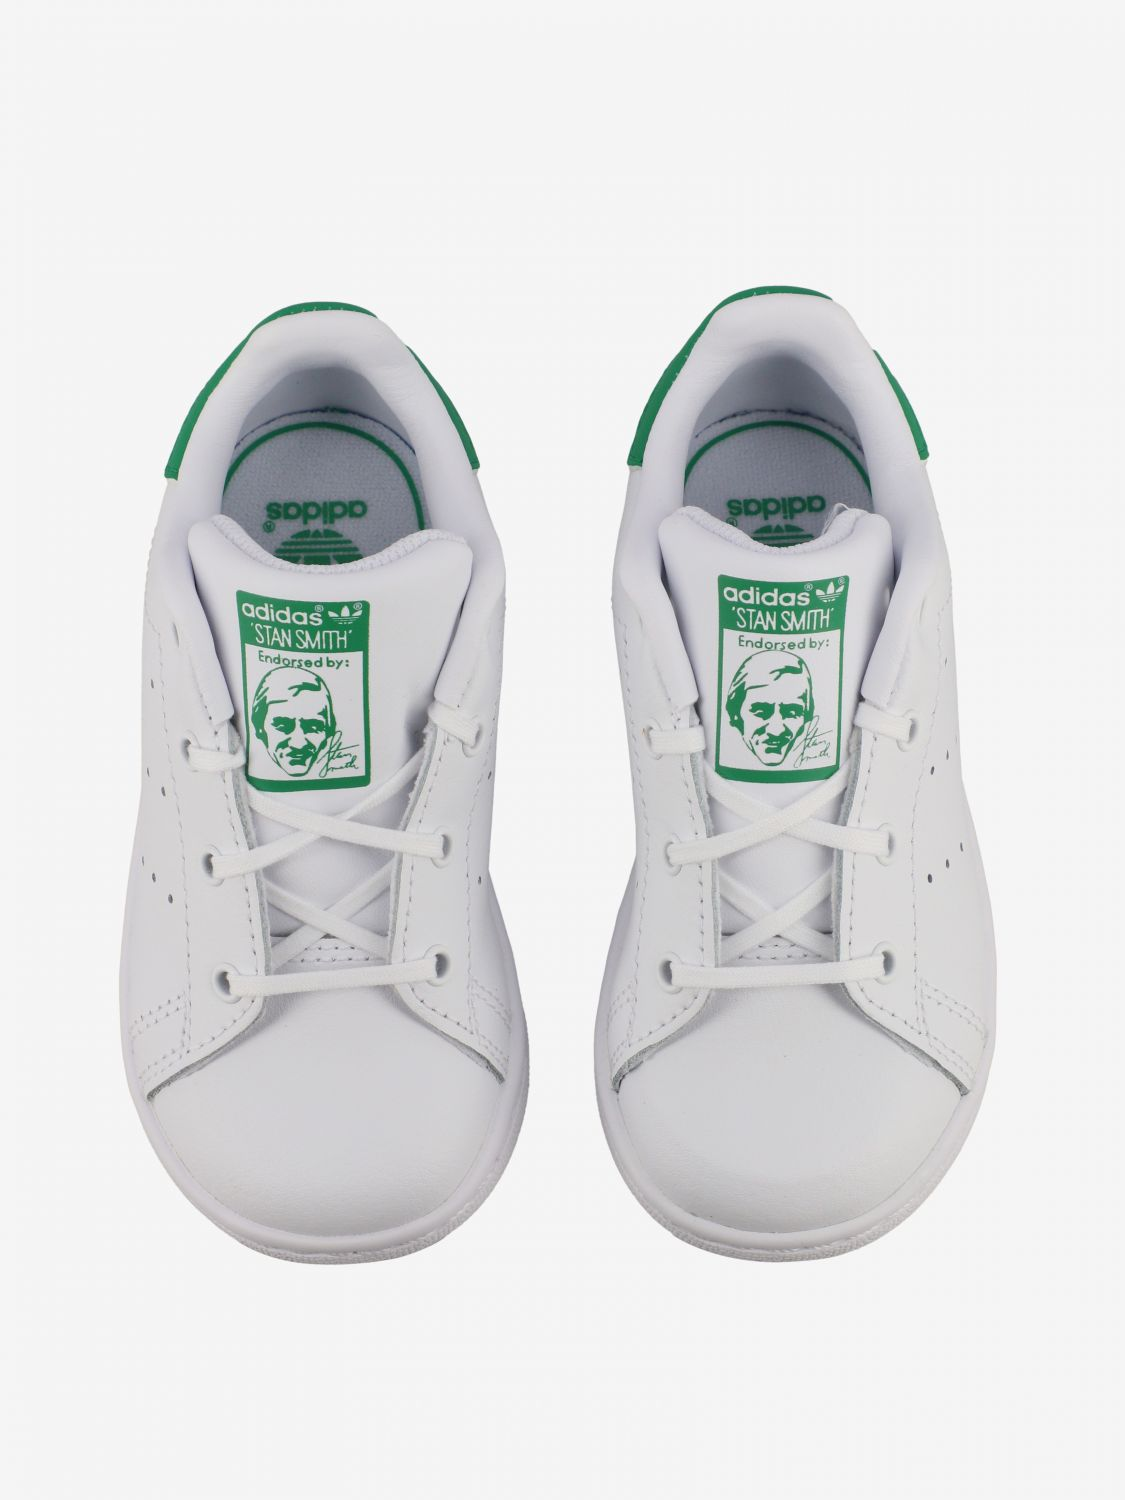 Shoes Adidas Originals: Stan smith Adidas Originals leather sneakers white 3